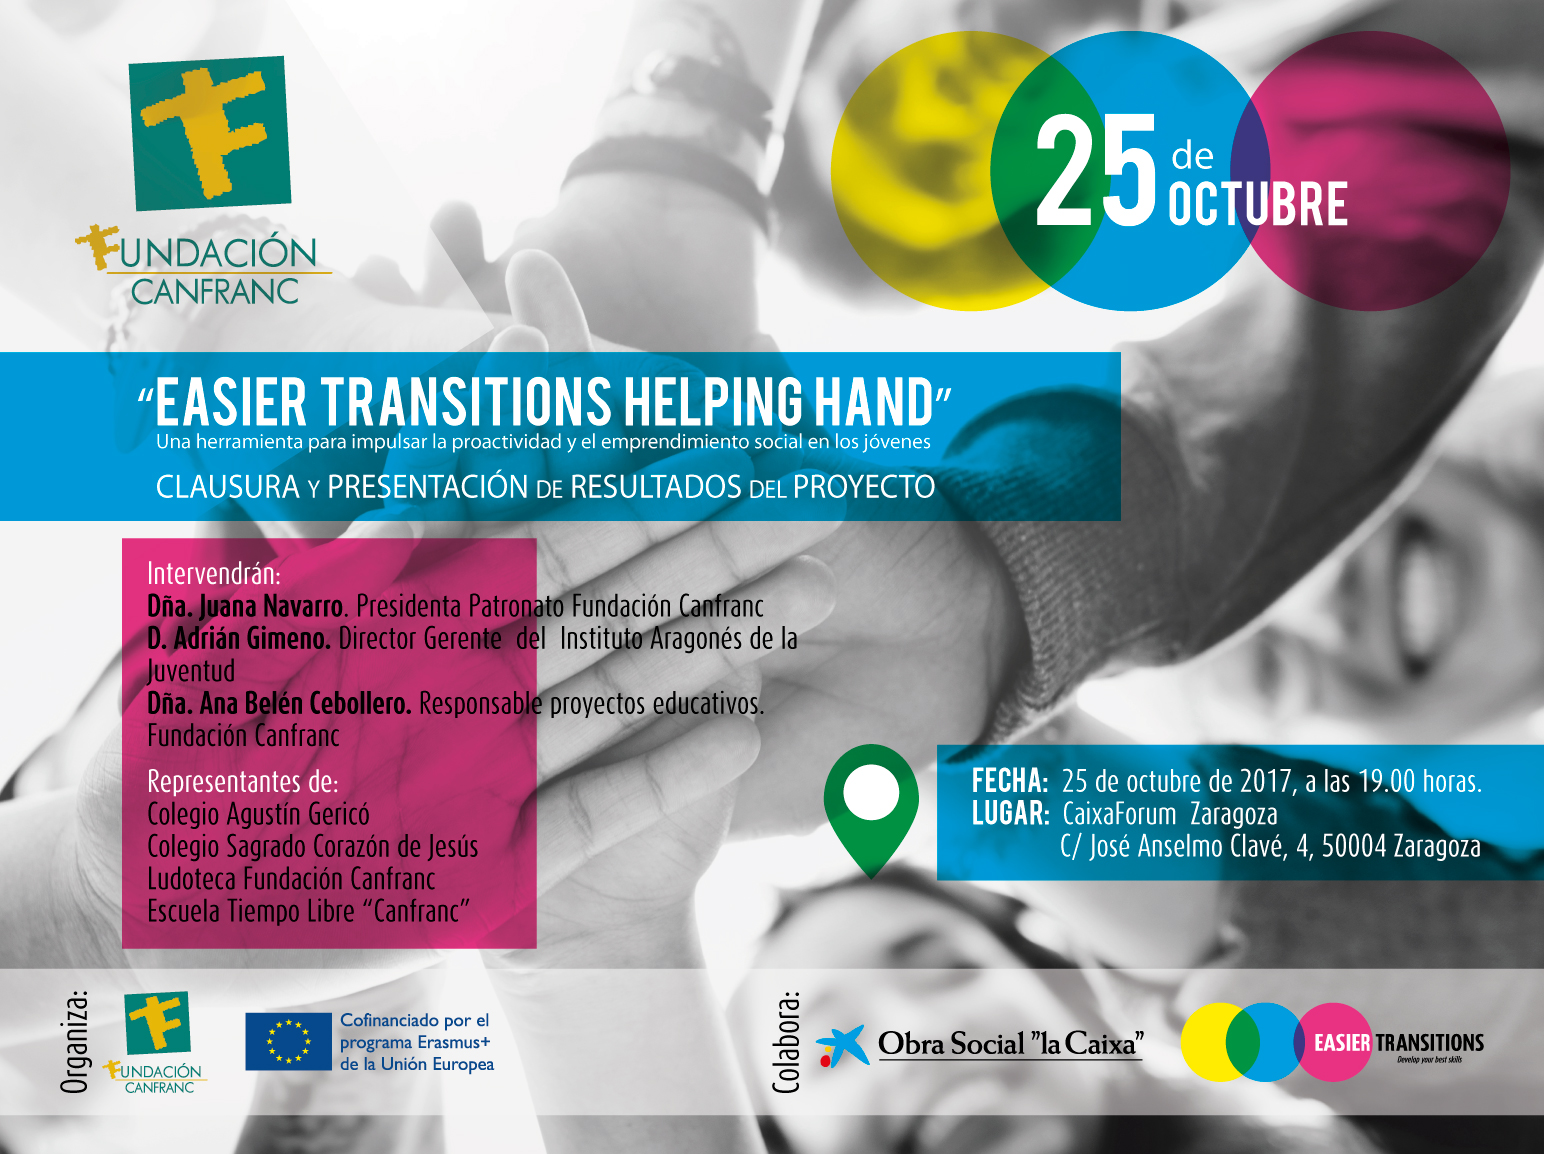 "25 OCTUBRE EN CAIXAFORUM, CLAUSURA DEL PROYECTO EUROPEO ""EASIER TRANSITIONS HELPING HAND"""